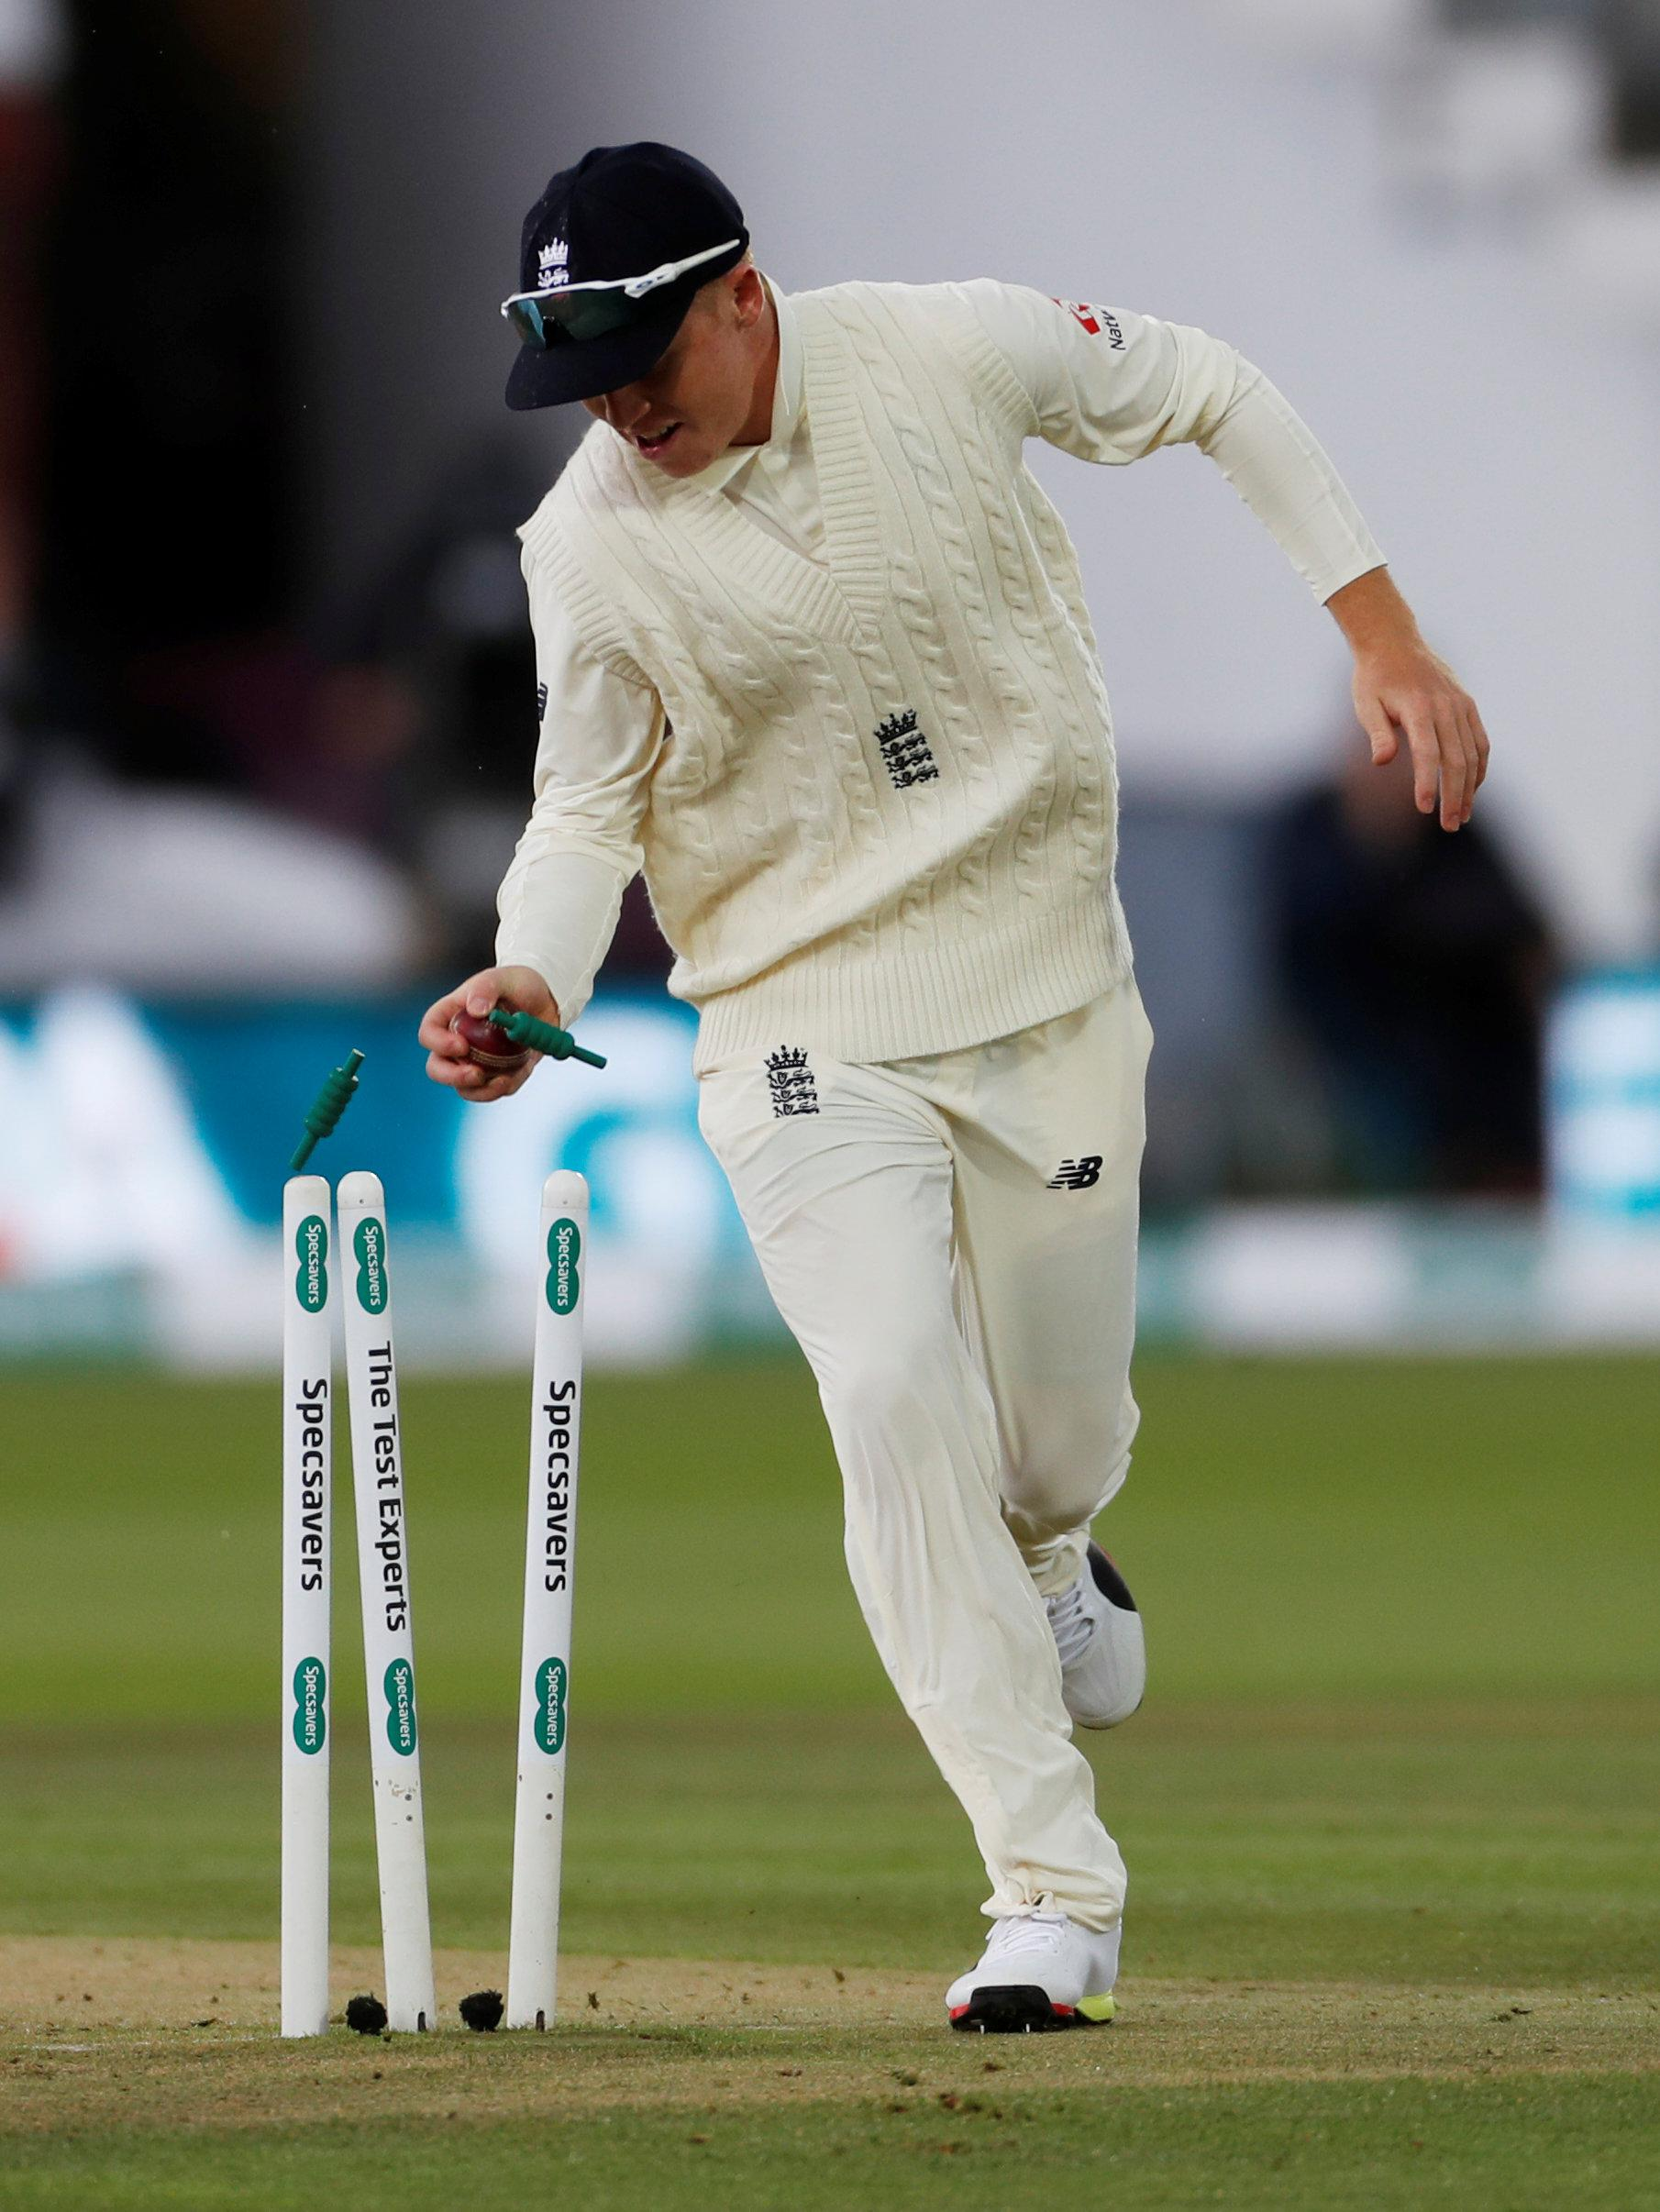 Ollie Pope whipped the bails off as Che Pujara lost his wicket